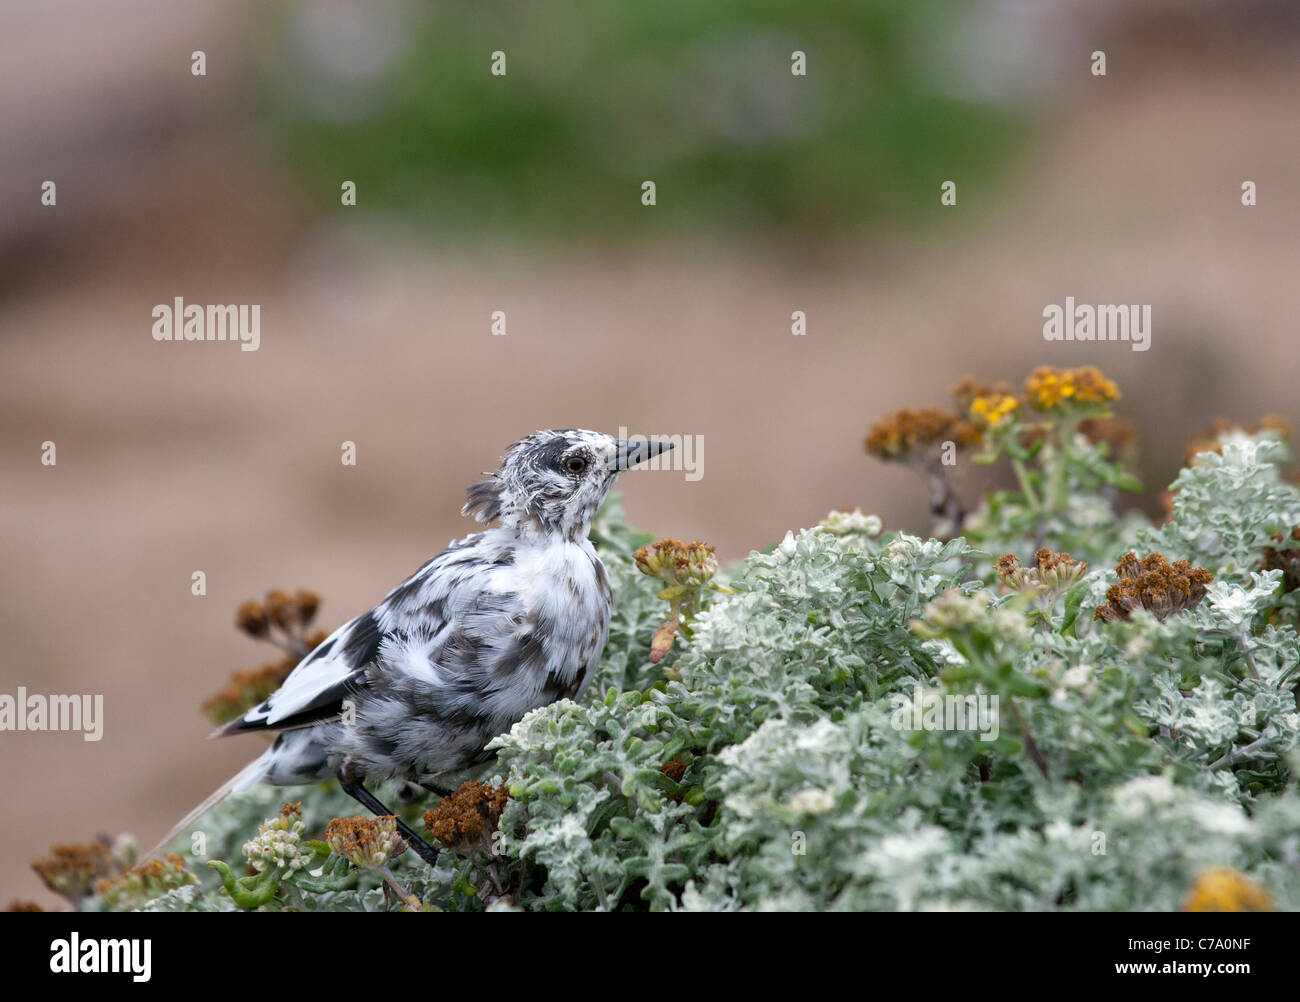 Leucistic Brewer's Blackbird - Stock Image